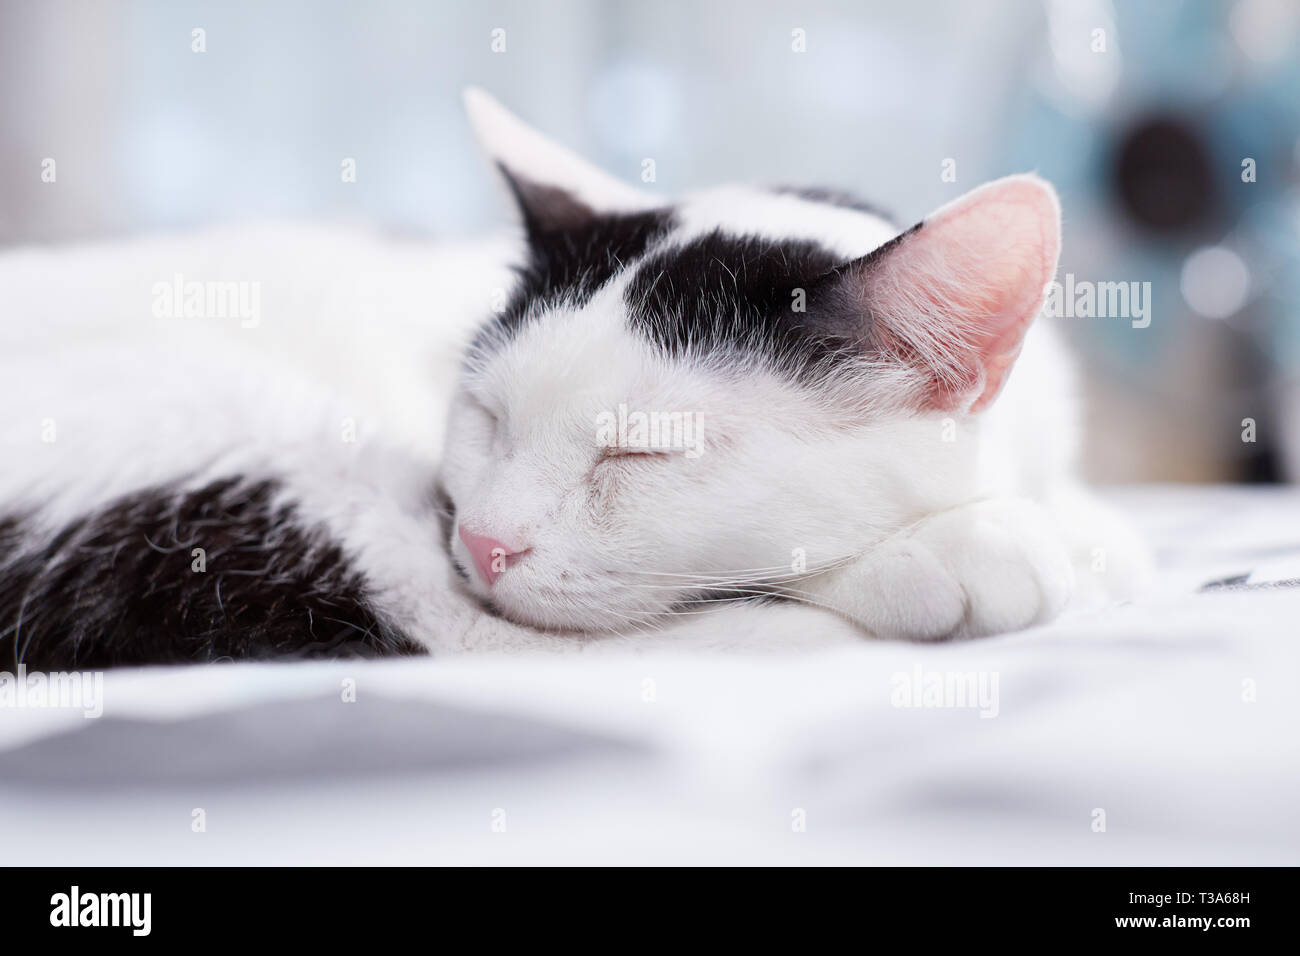 A white cat with black markings is sleeping on a bed and feels comfortable - Stock Image